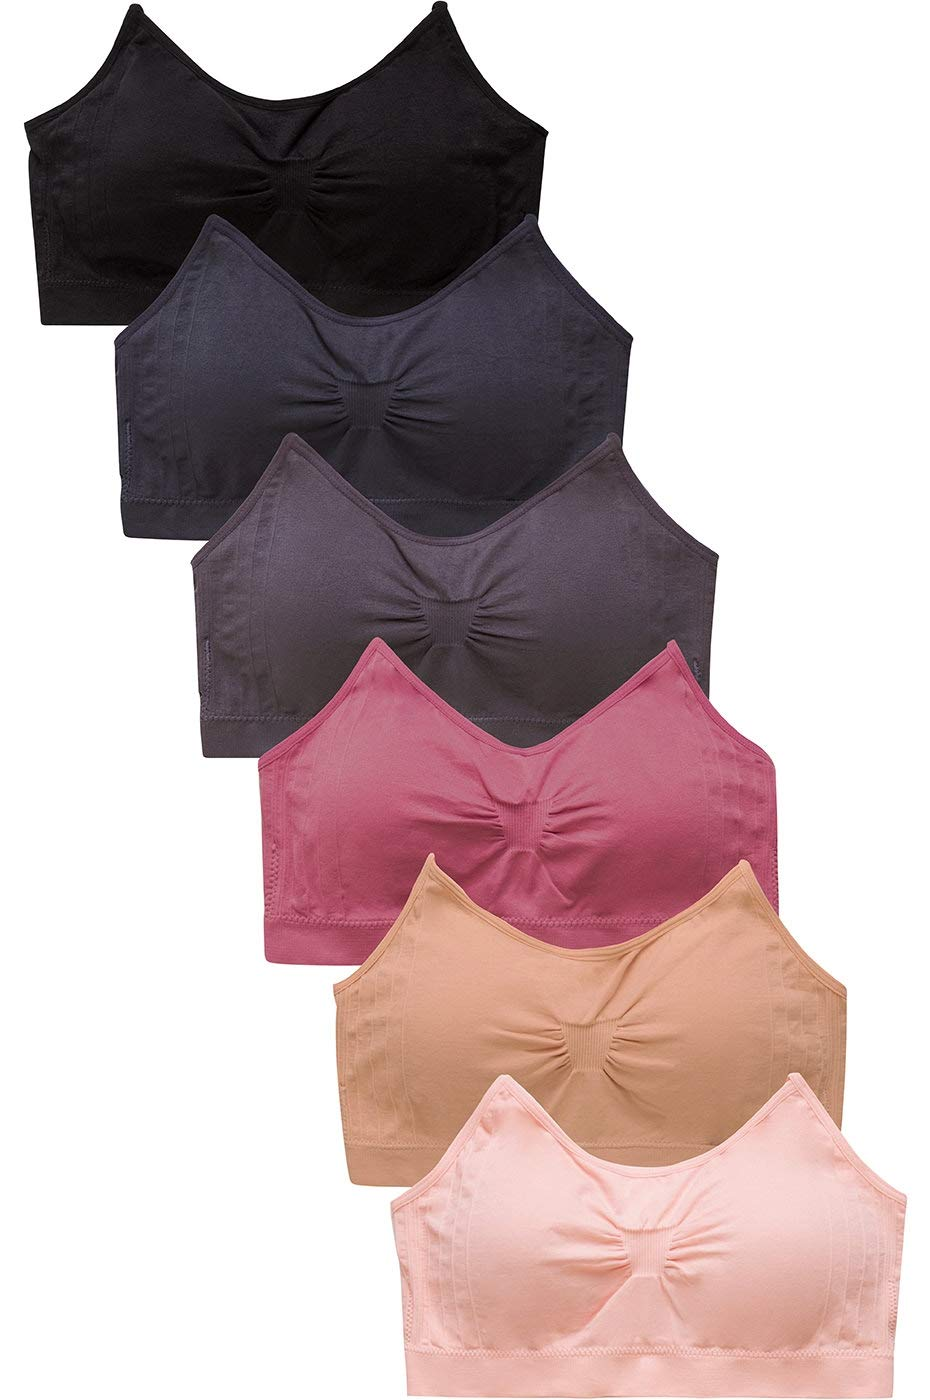 Sofra Women's 6 Pack of Seamless Padded Sports Bras-Space